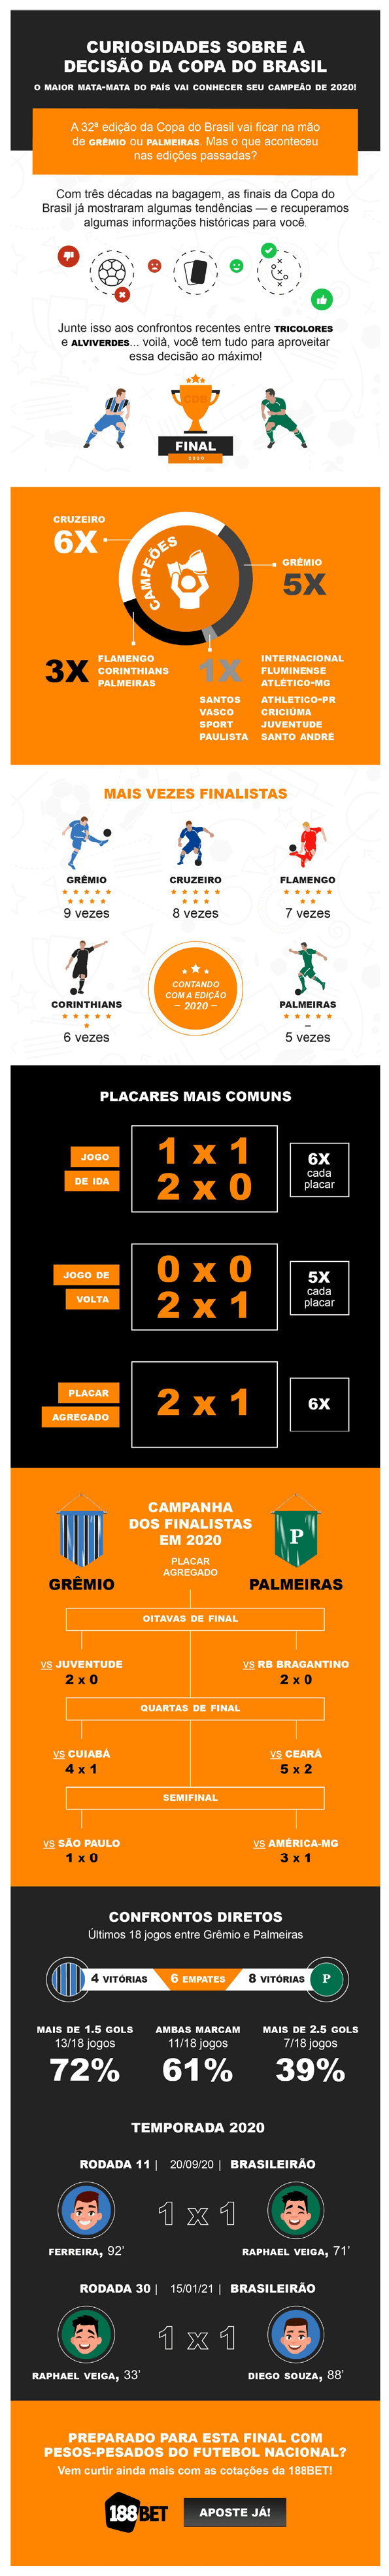 infografico-188bet (1).png